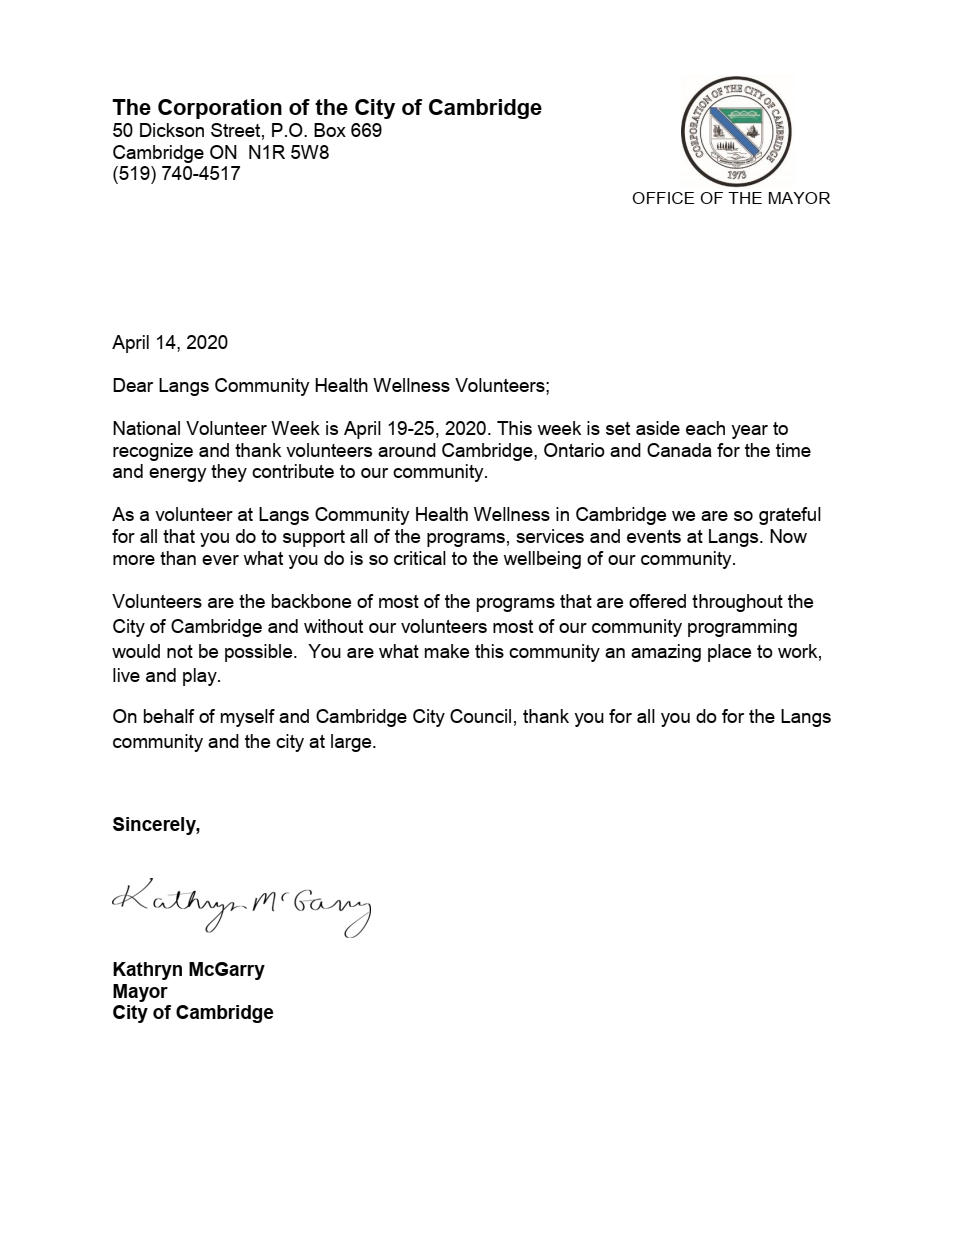 Mayor's Thank You to Volunteers